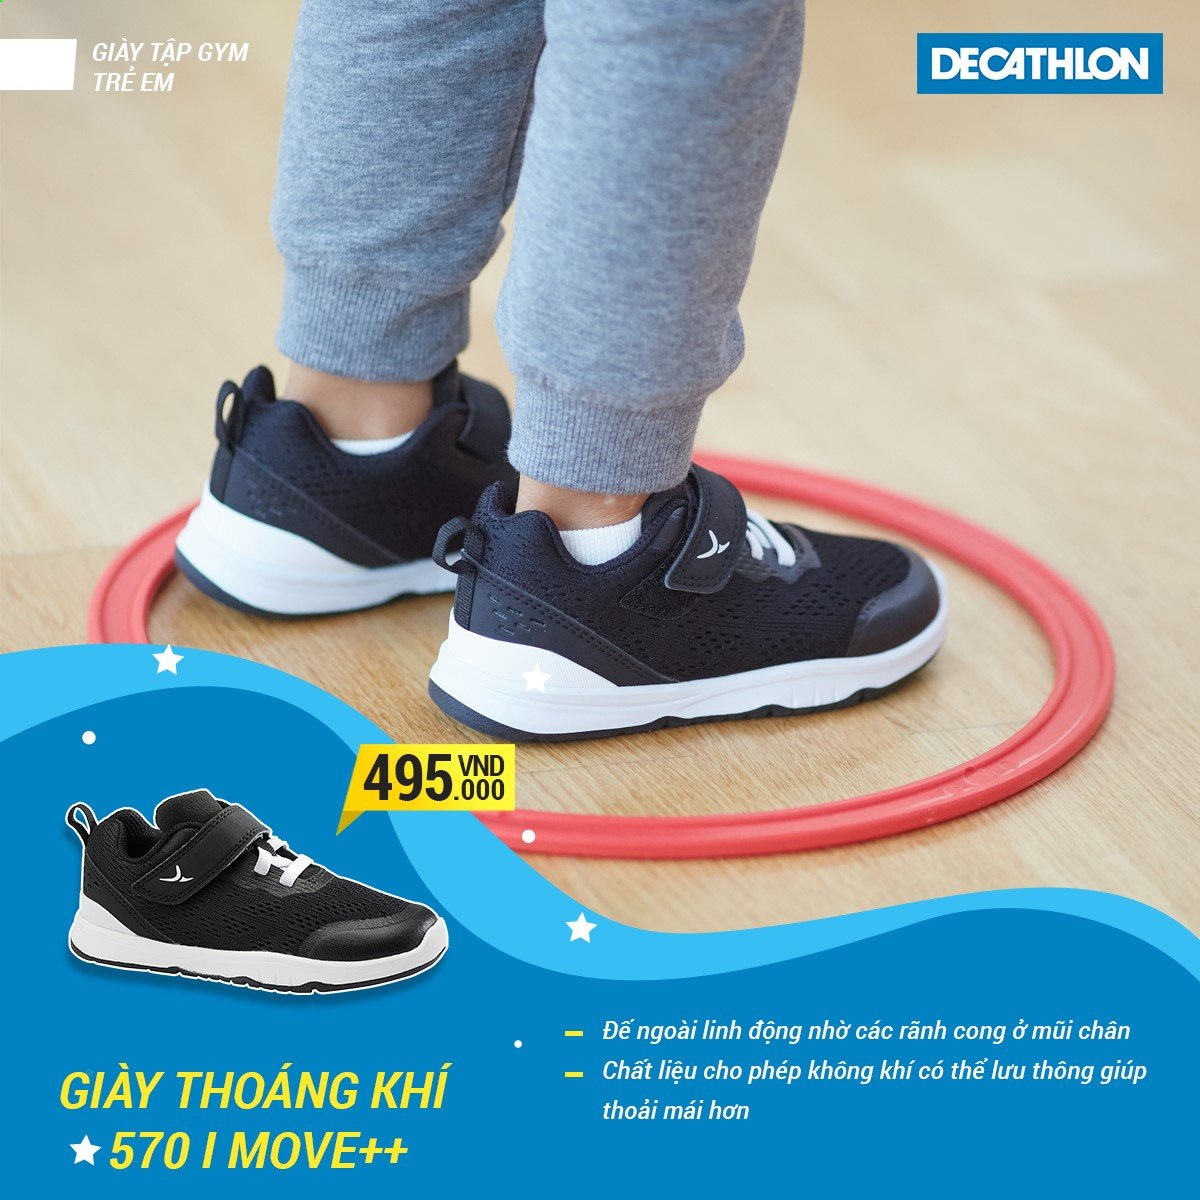 Decathlon offer . Page 4.